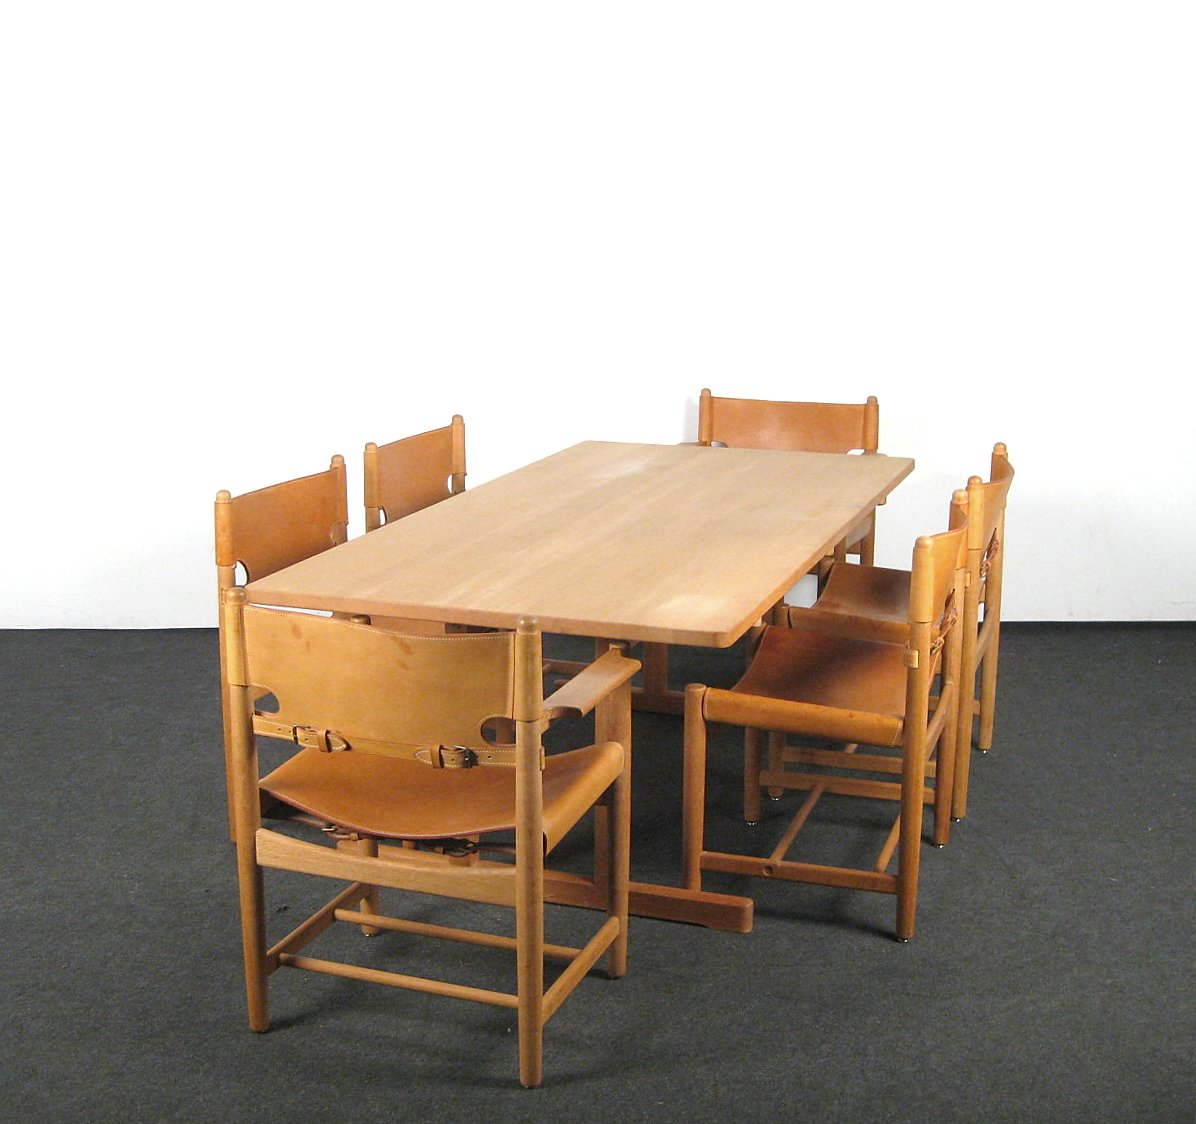 Børge Mogensen. A set of chairs, model Hunting Chair 3237 + 3238 + Shaker table, model 6286 for Fredericia Furniture (7)